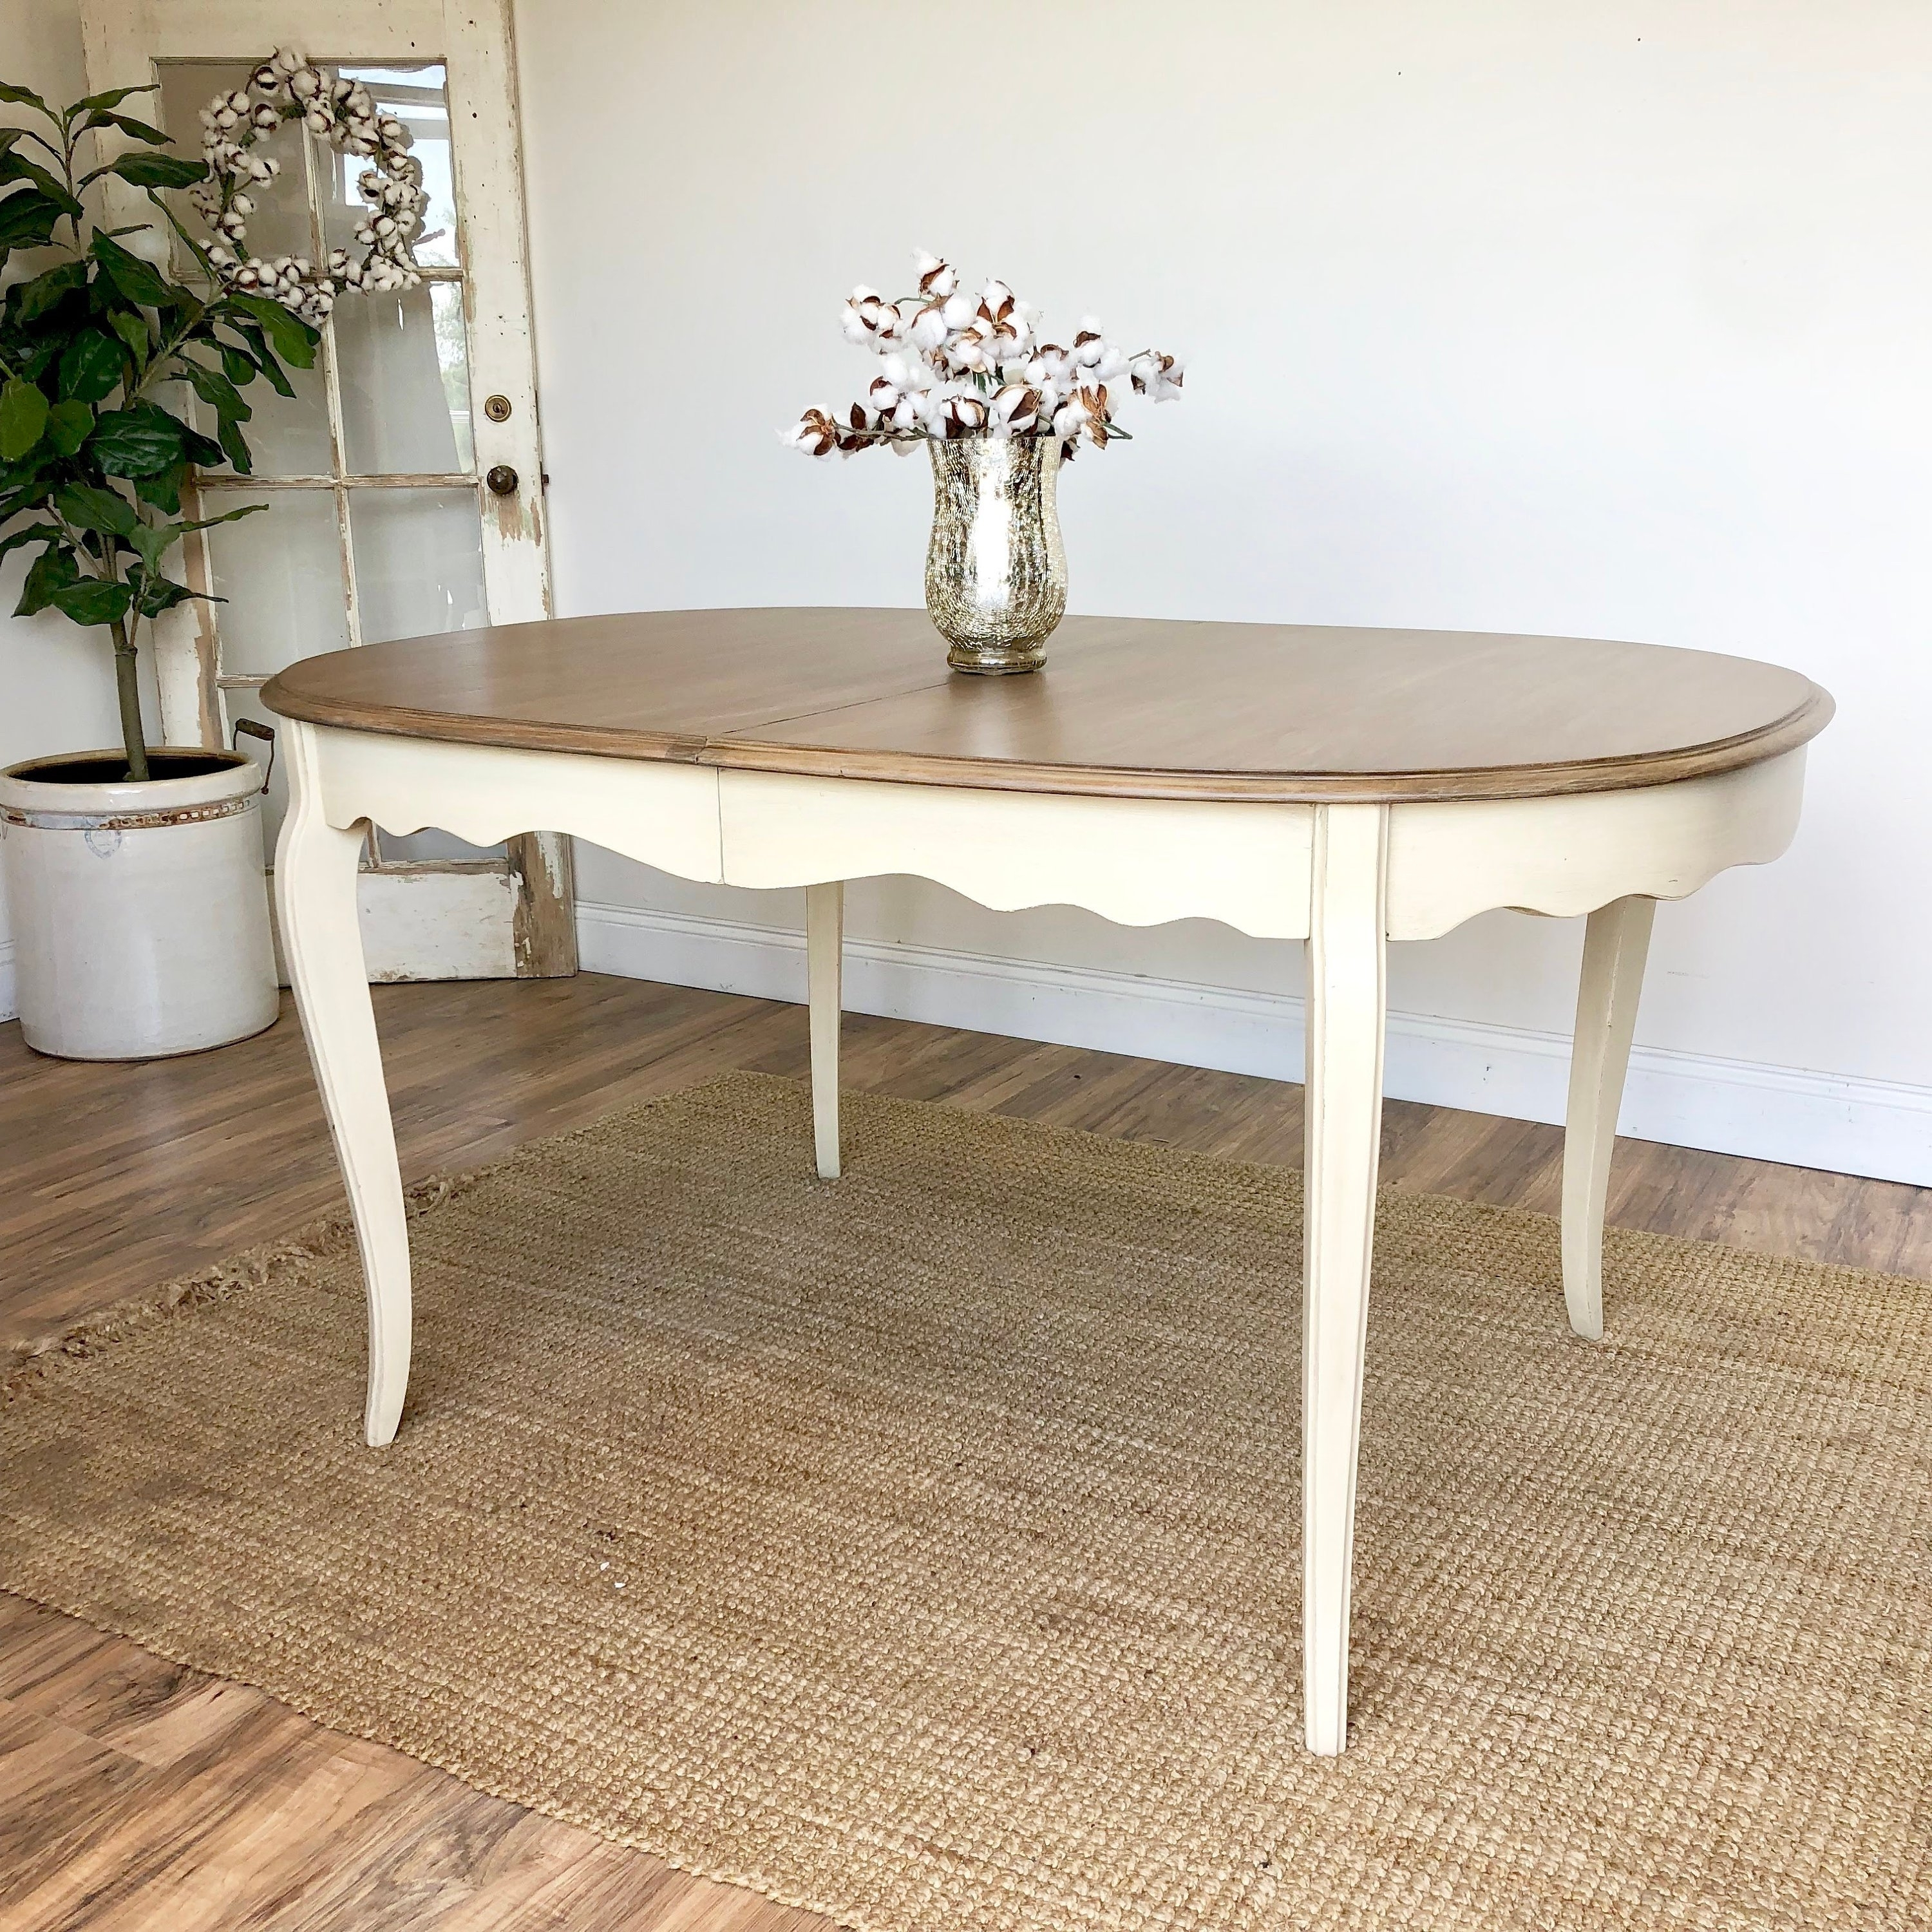 French Country Dining Tables With Current Yellow French Country Dining Table – Shabby Chic Distressed Wood (View 9 of 25)